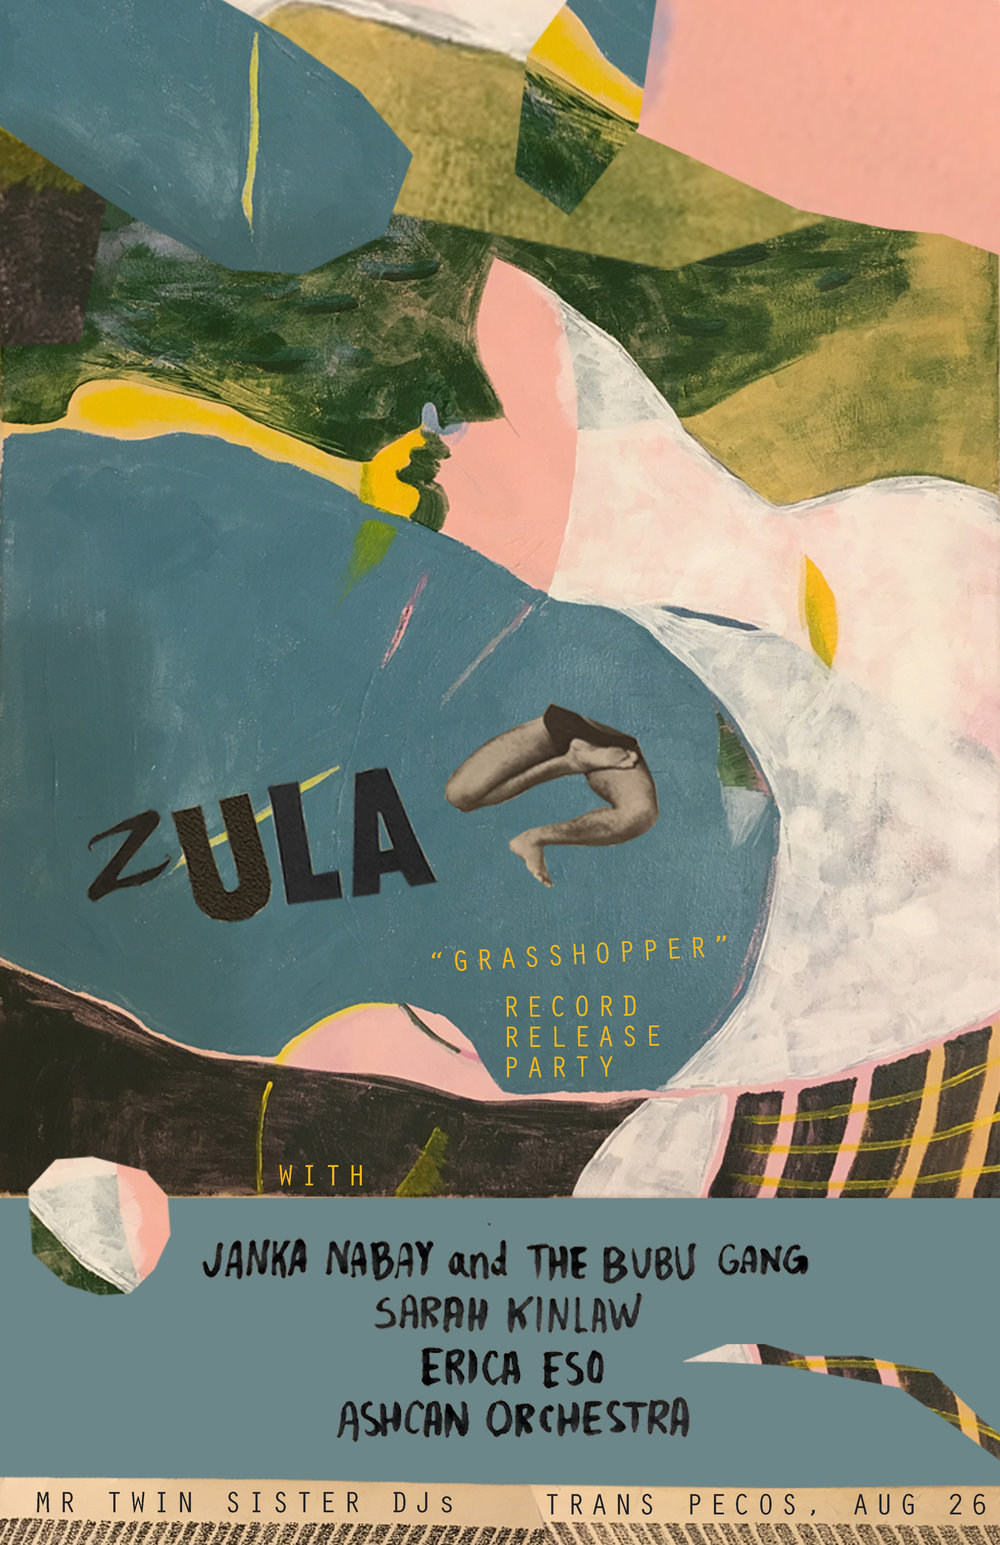 show poster, 2016